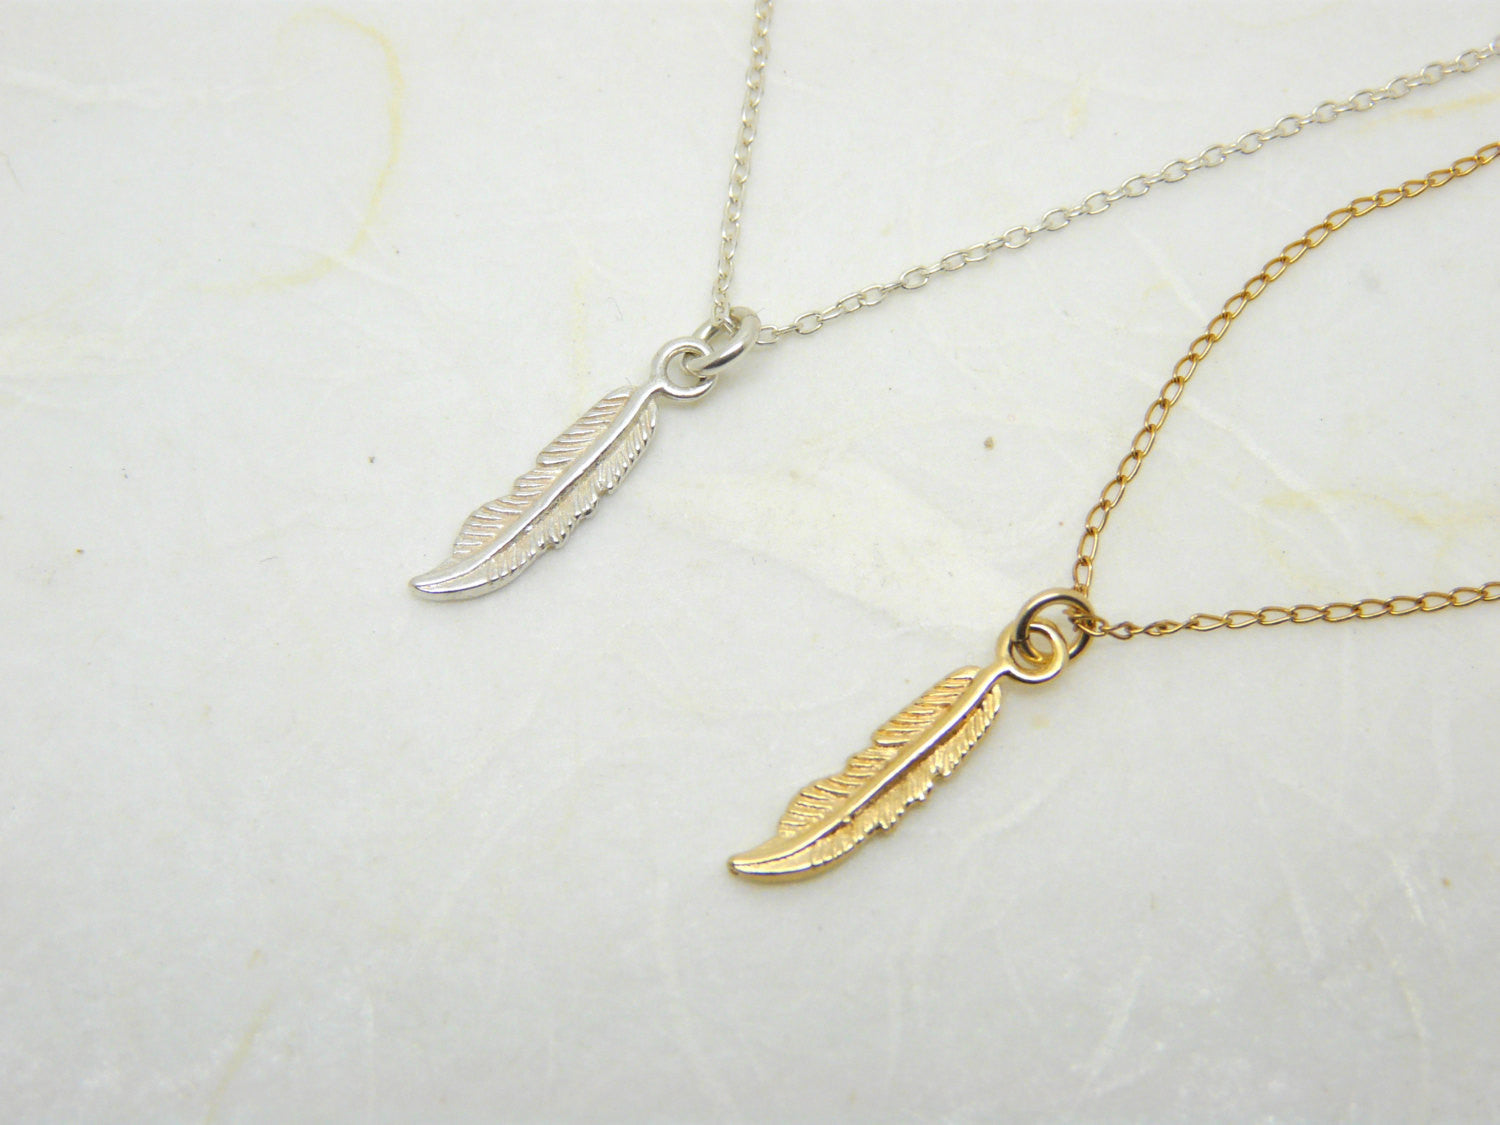 Feather necklace - OpaLandJewelry